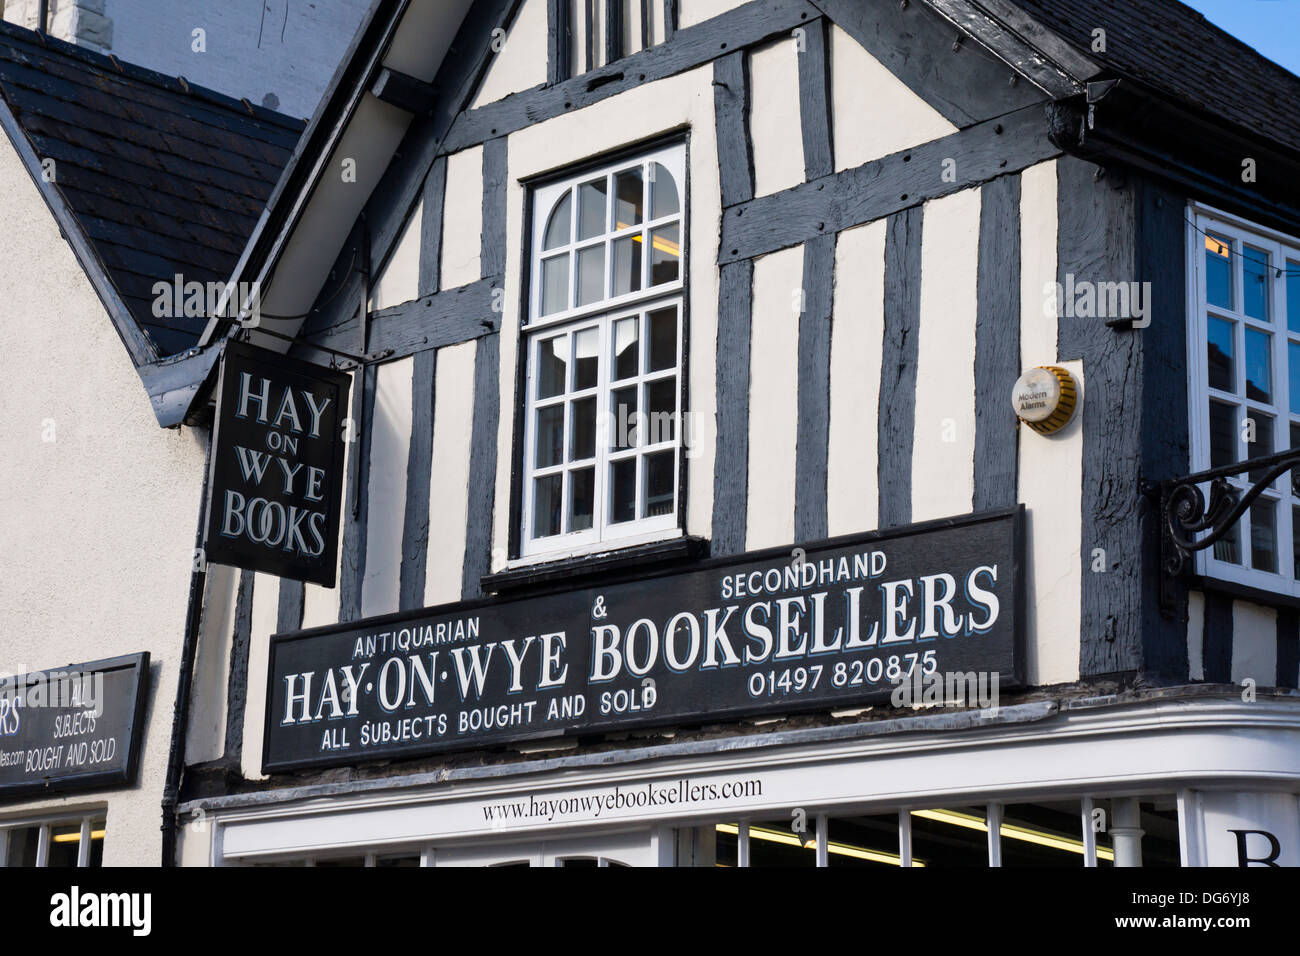 Hay-on Wye a small town in Powys Wales famous for its bookshops and Literary festival.  Hay-on-Wye Booksellers - Stock Image